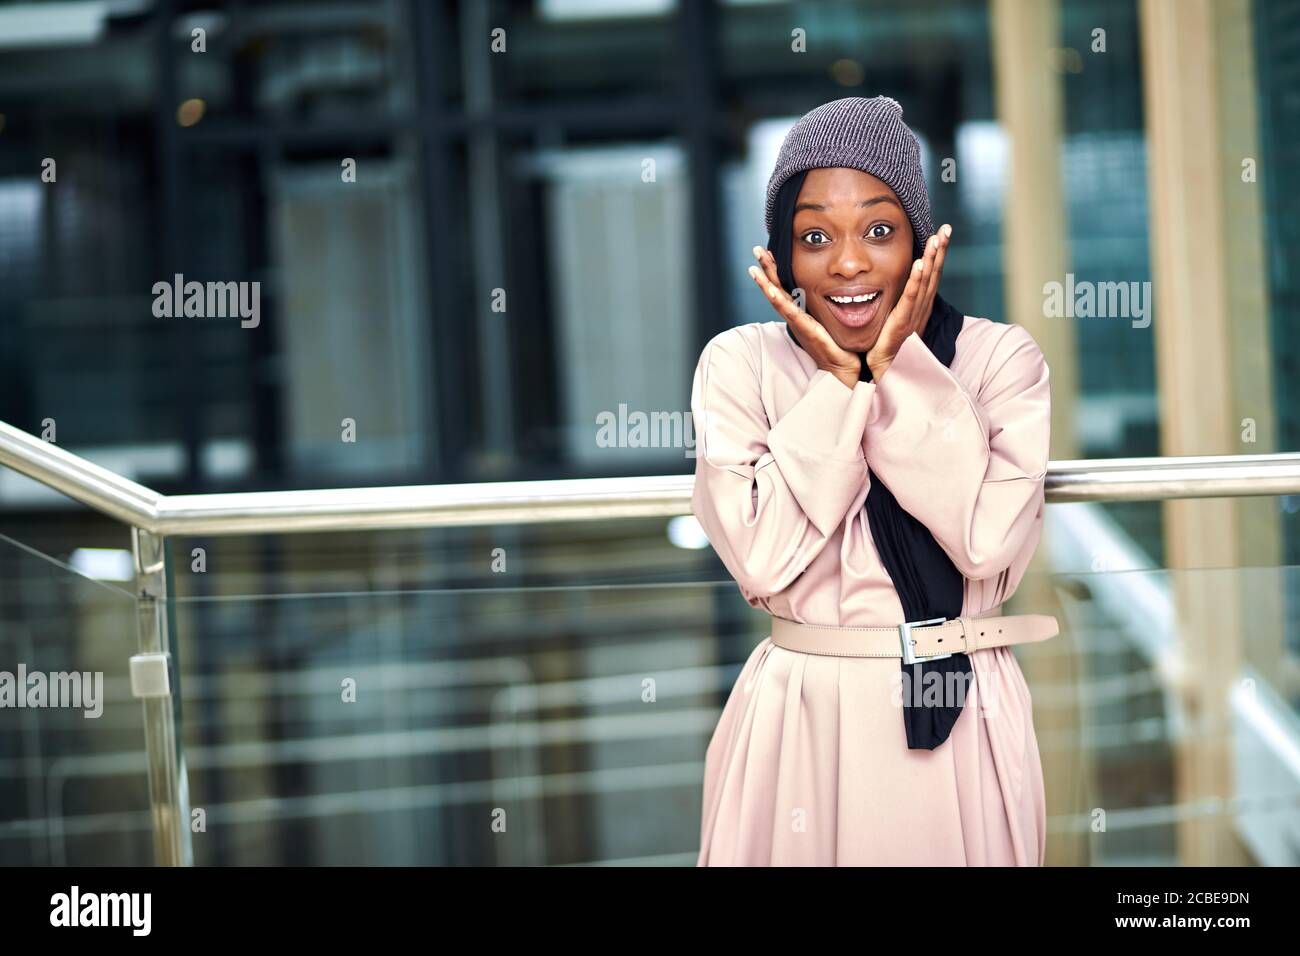 Cheerful surprised young Muslim woman of african ethnicity dressed in pink long dress and black scarf posing in urban setting smiling at camera Stock Photo